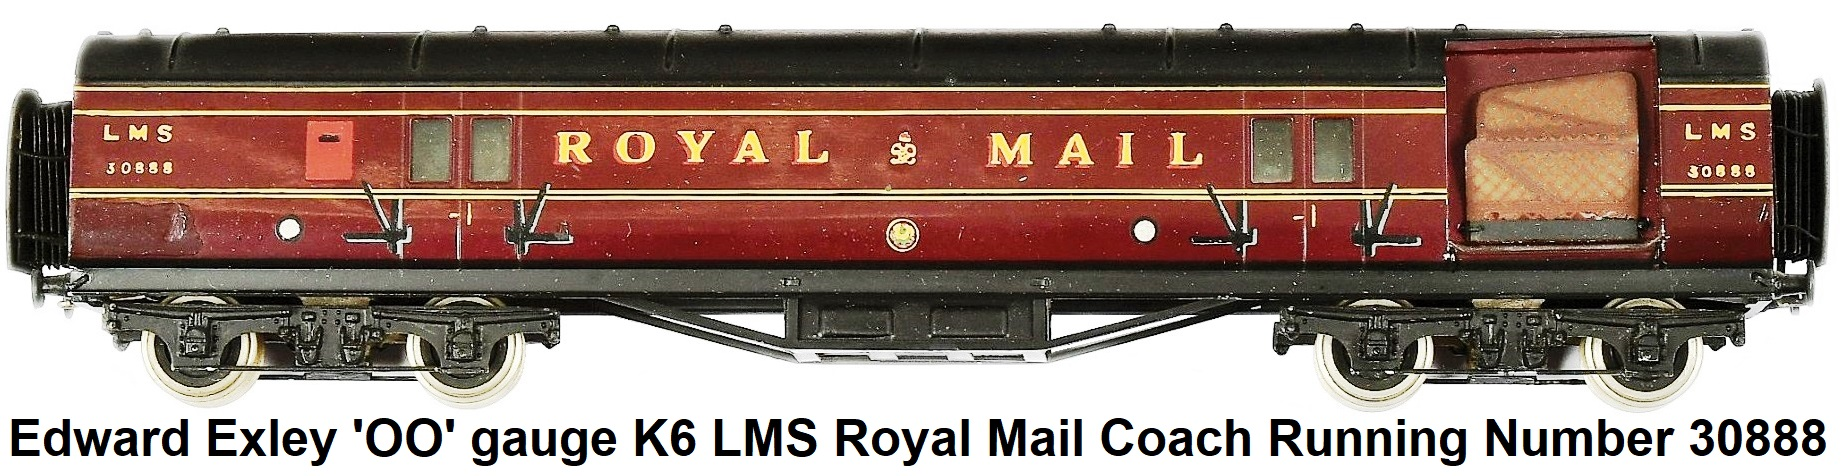 Exley 'OO' gauge K6 LMS Royal Mail Coach Running Number 30888